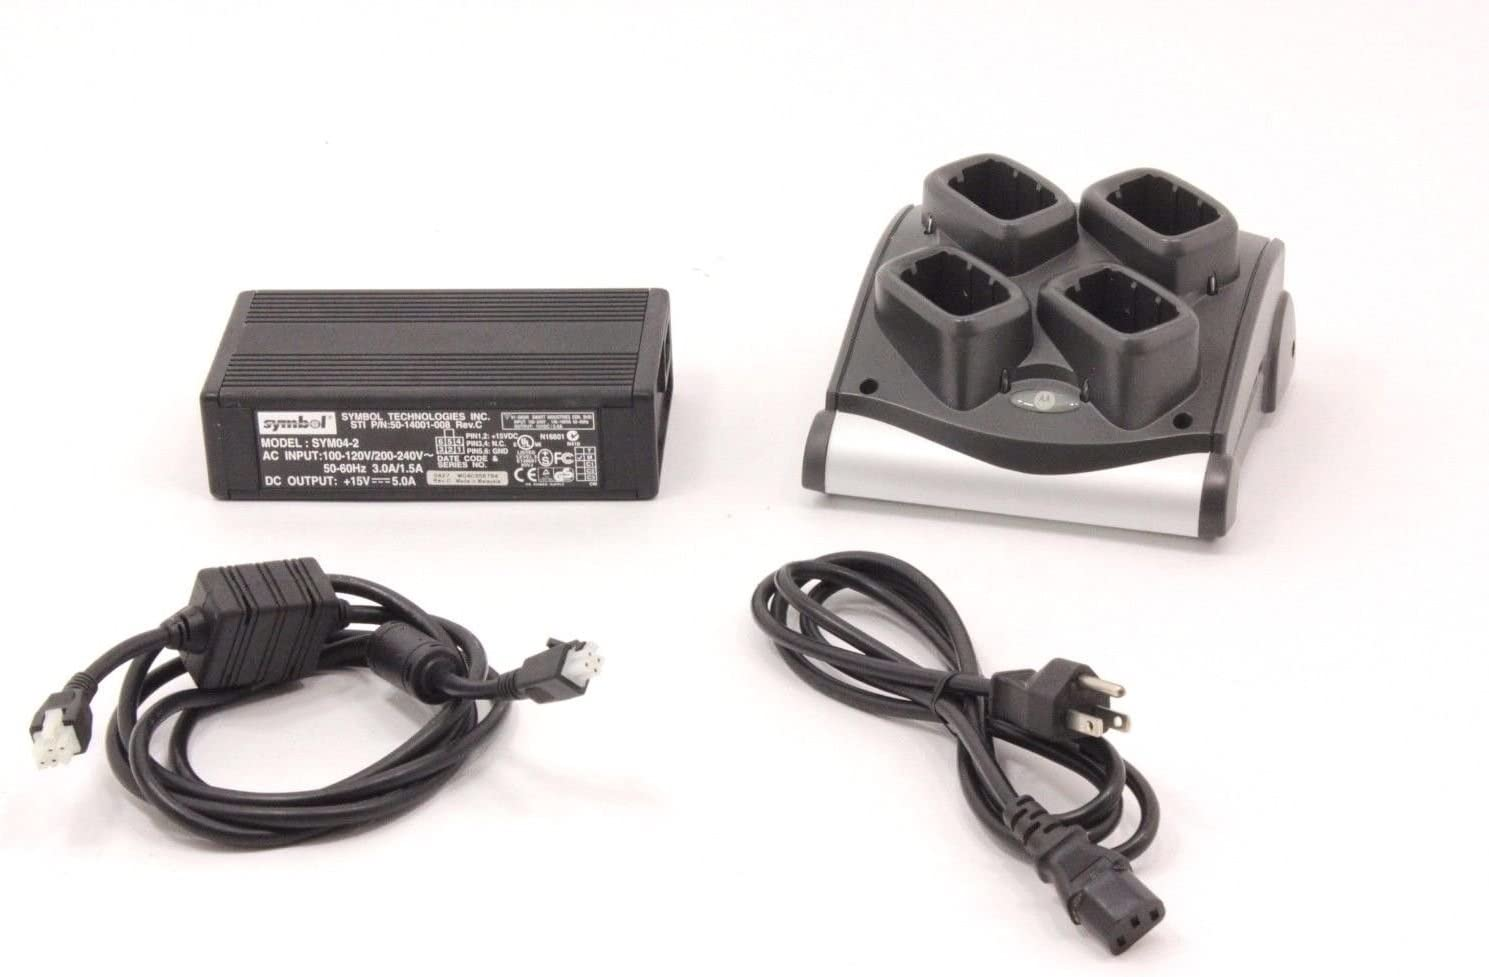 DC Line Cord and AC Line Cord Includes Charger Power Supply Symbol Motorola SAC9000-4000R 4-Slot Battery Charger Kit